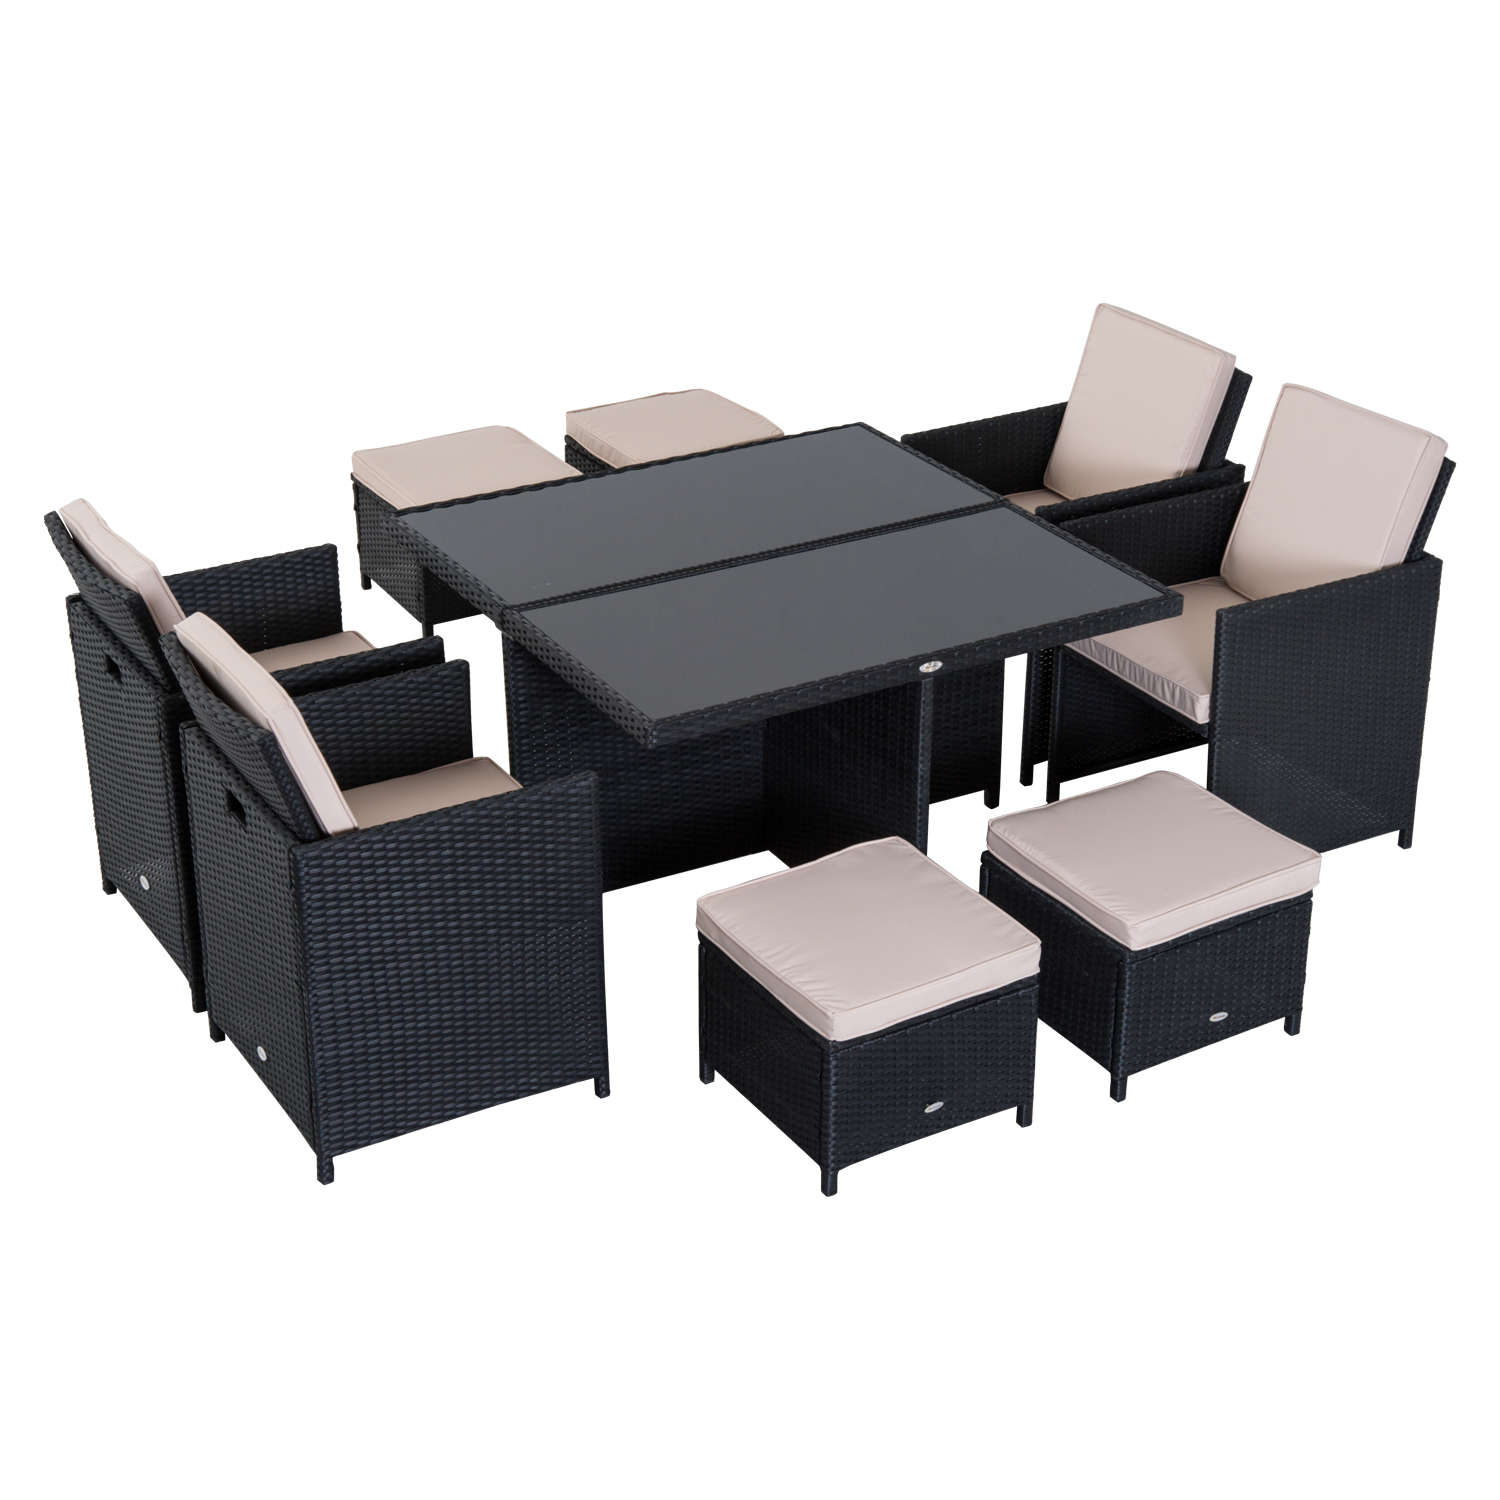 Image of £399.99 Outsunny 9 Pcs Rattan Dining Set-Black / 9PC Wicker Garden Furniture Set Outdoor Easy Storage Table Chairs with Foot Stool Thick Cushion - Black Pieces Seat Footrest 861-028BK 5056029889336